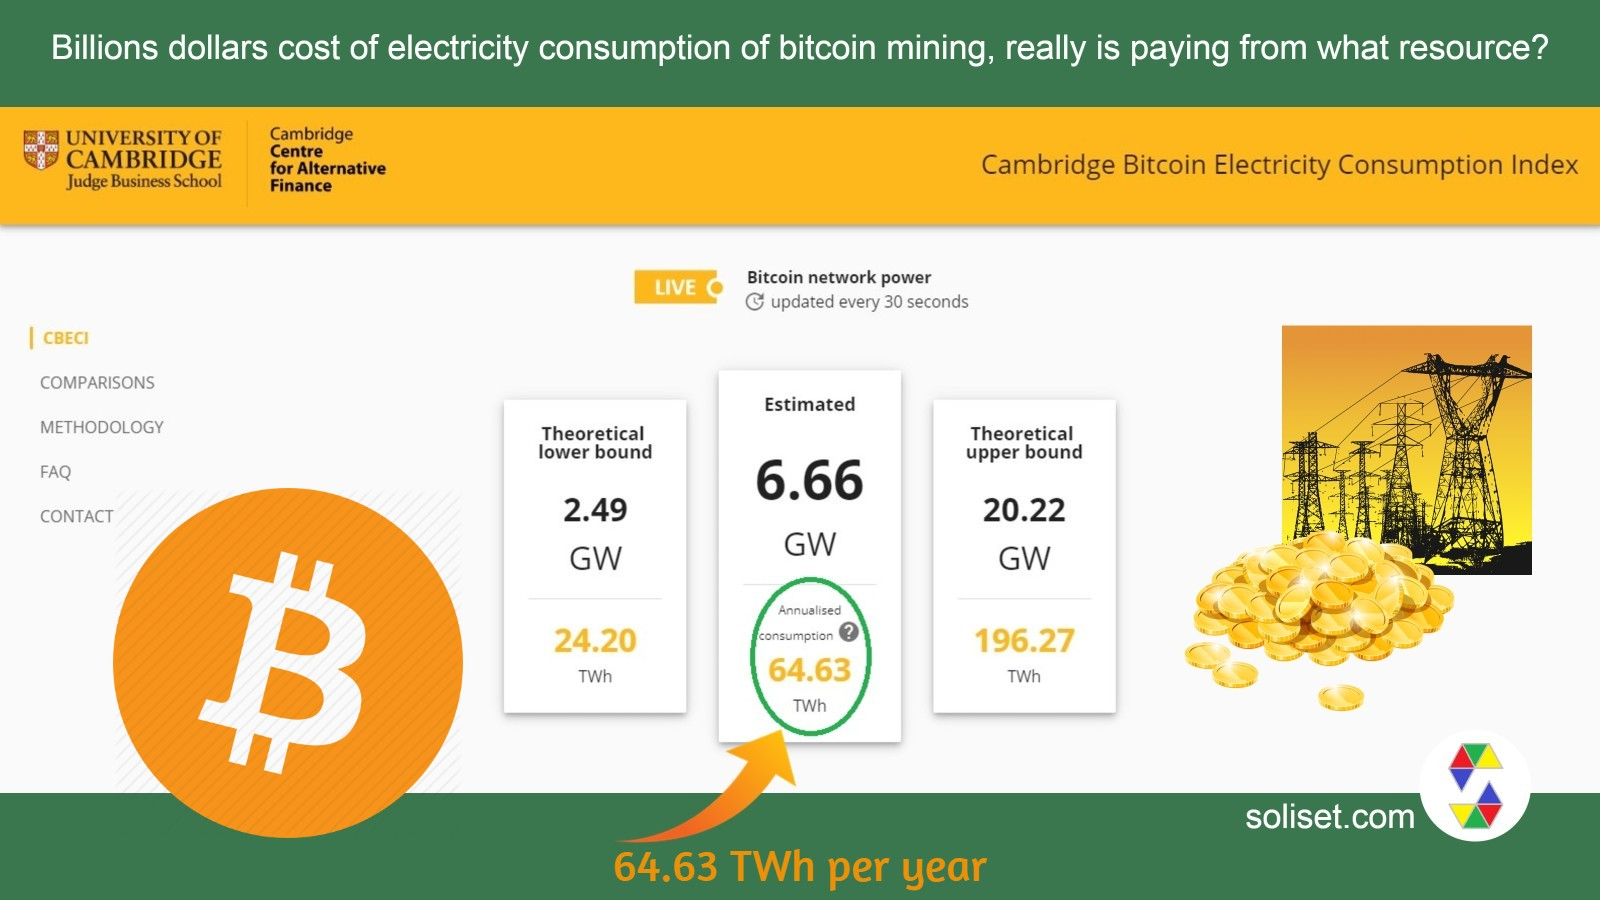 Cambridge Bitcoin Electricity Consumption Index (CBECI)